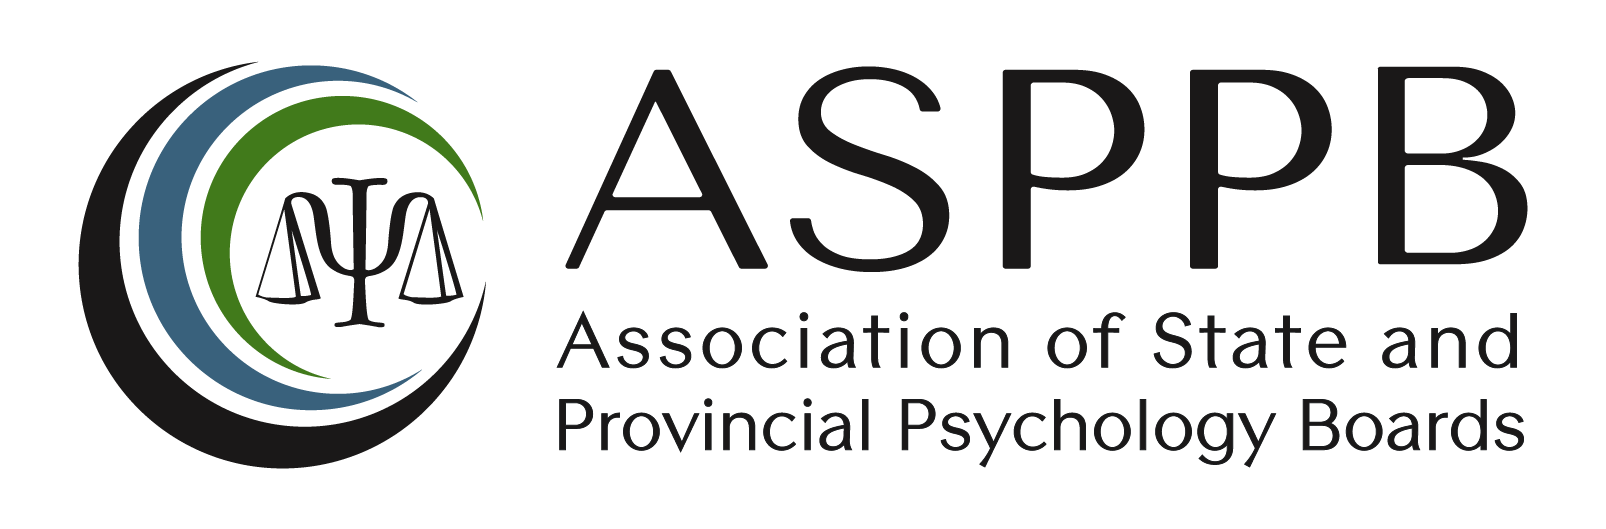 The Association of State and Provincial Psychology Boards